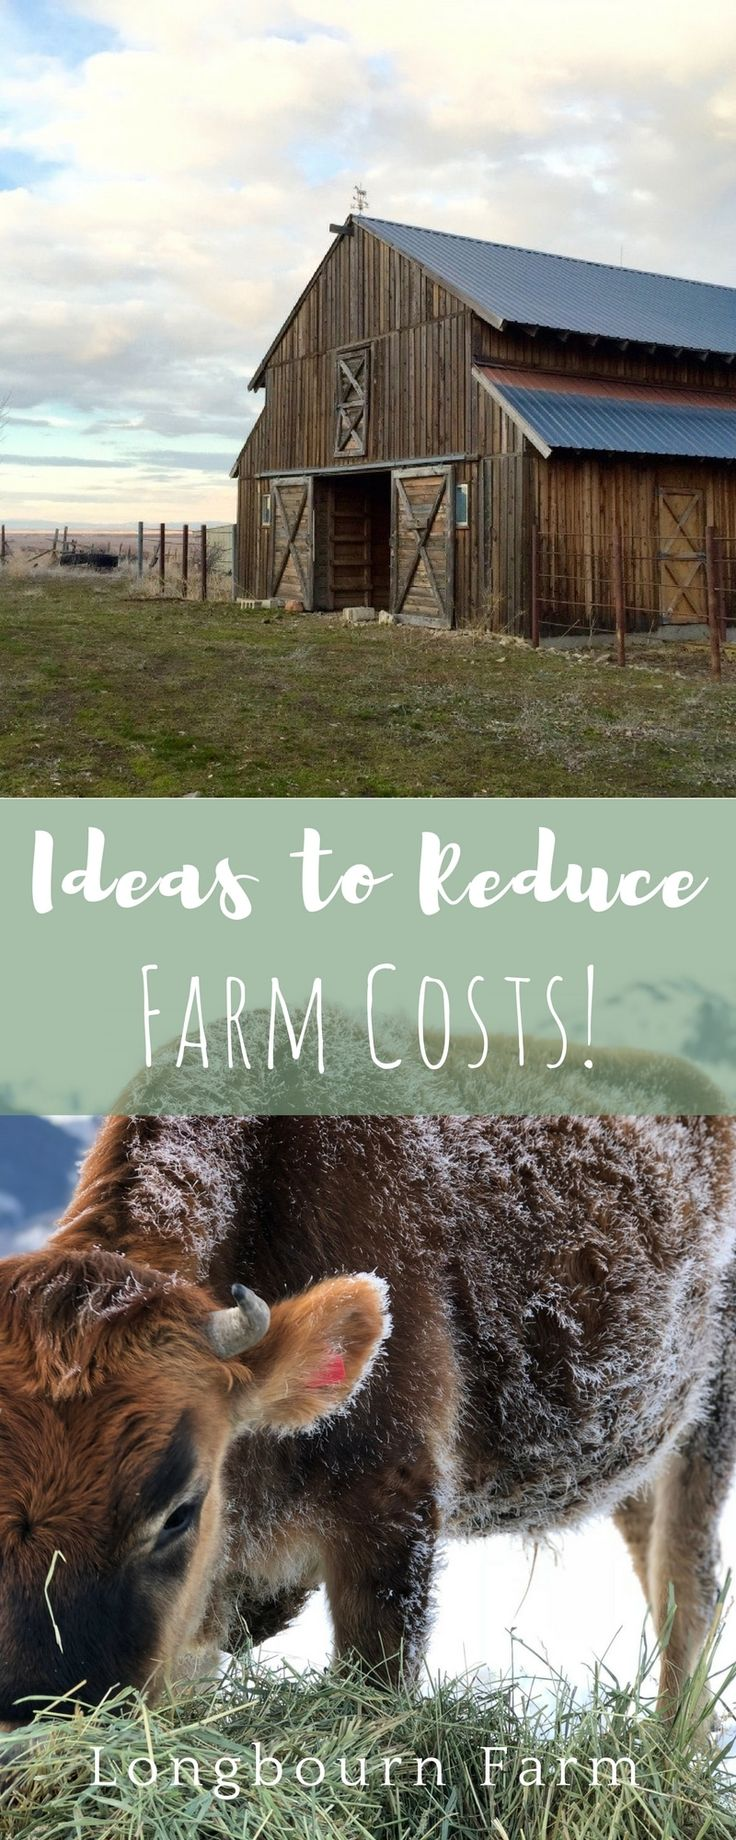 Check out this post for 8 ways you can reduce the cost of your farm. Typical ideas to out-of-the-box ways you can save a buck.  via @https://www.pinterest.com/longbournfarm/